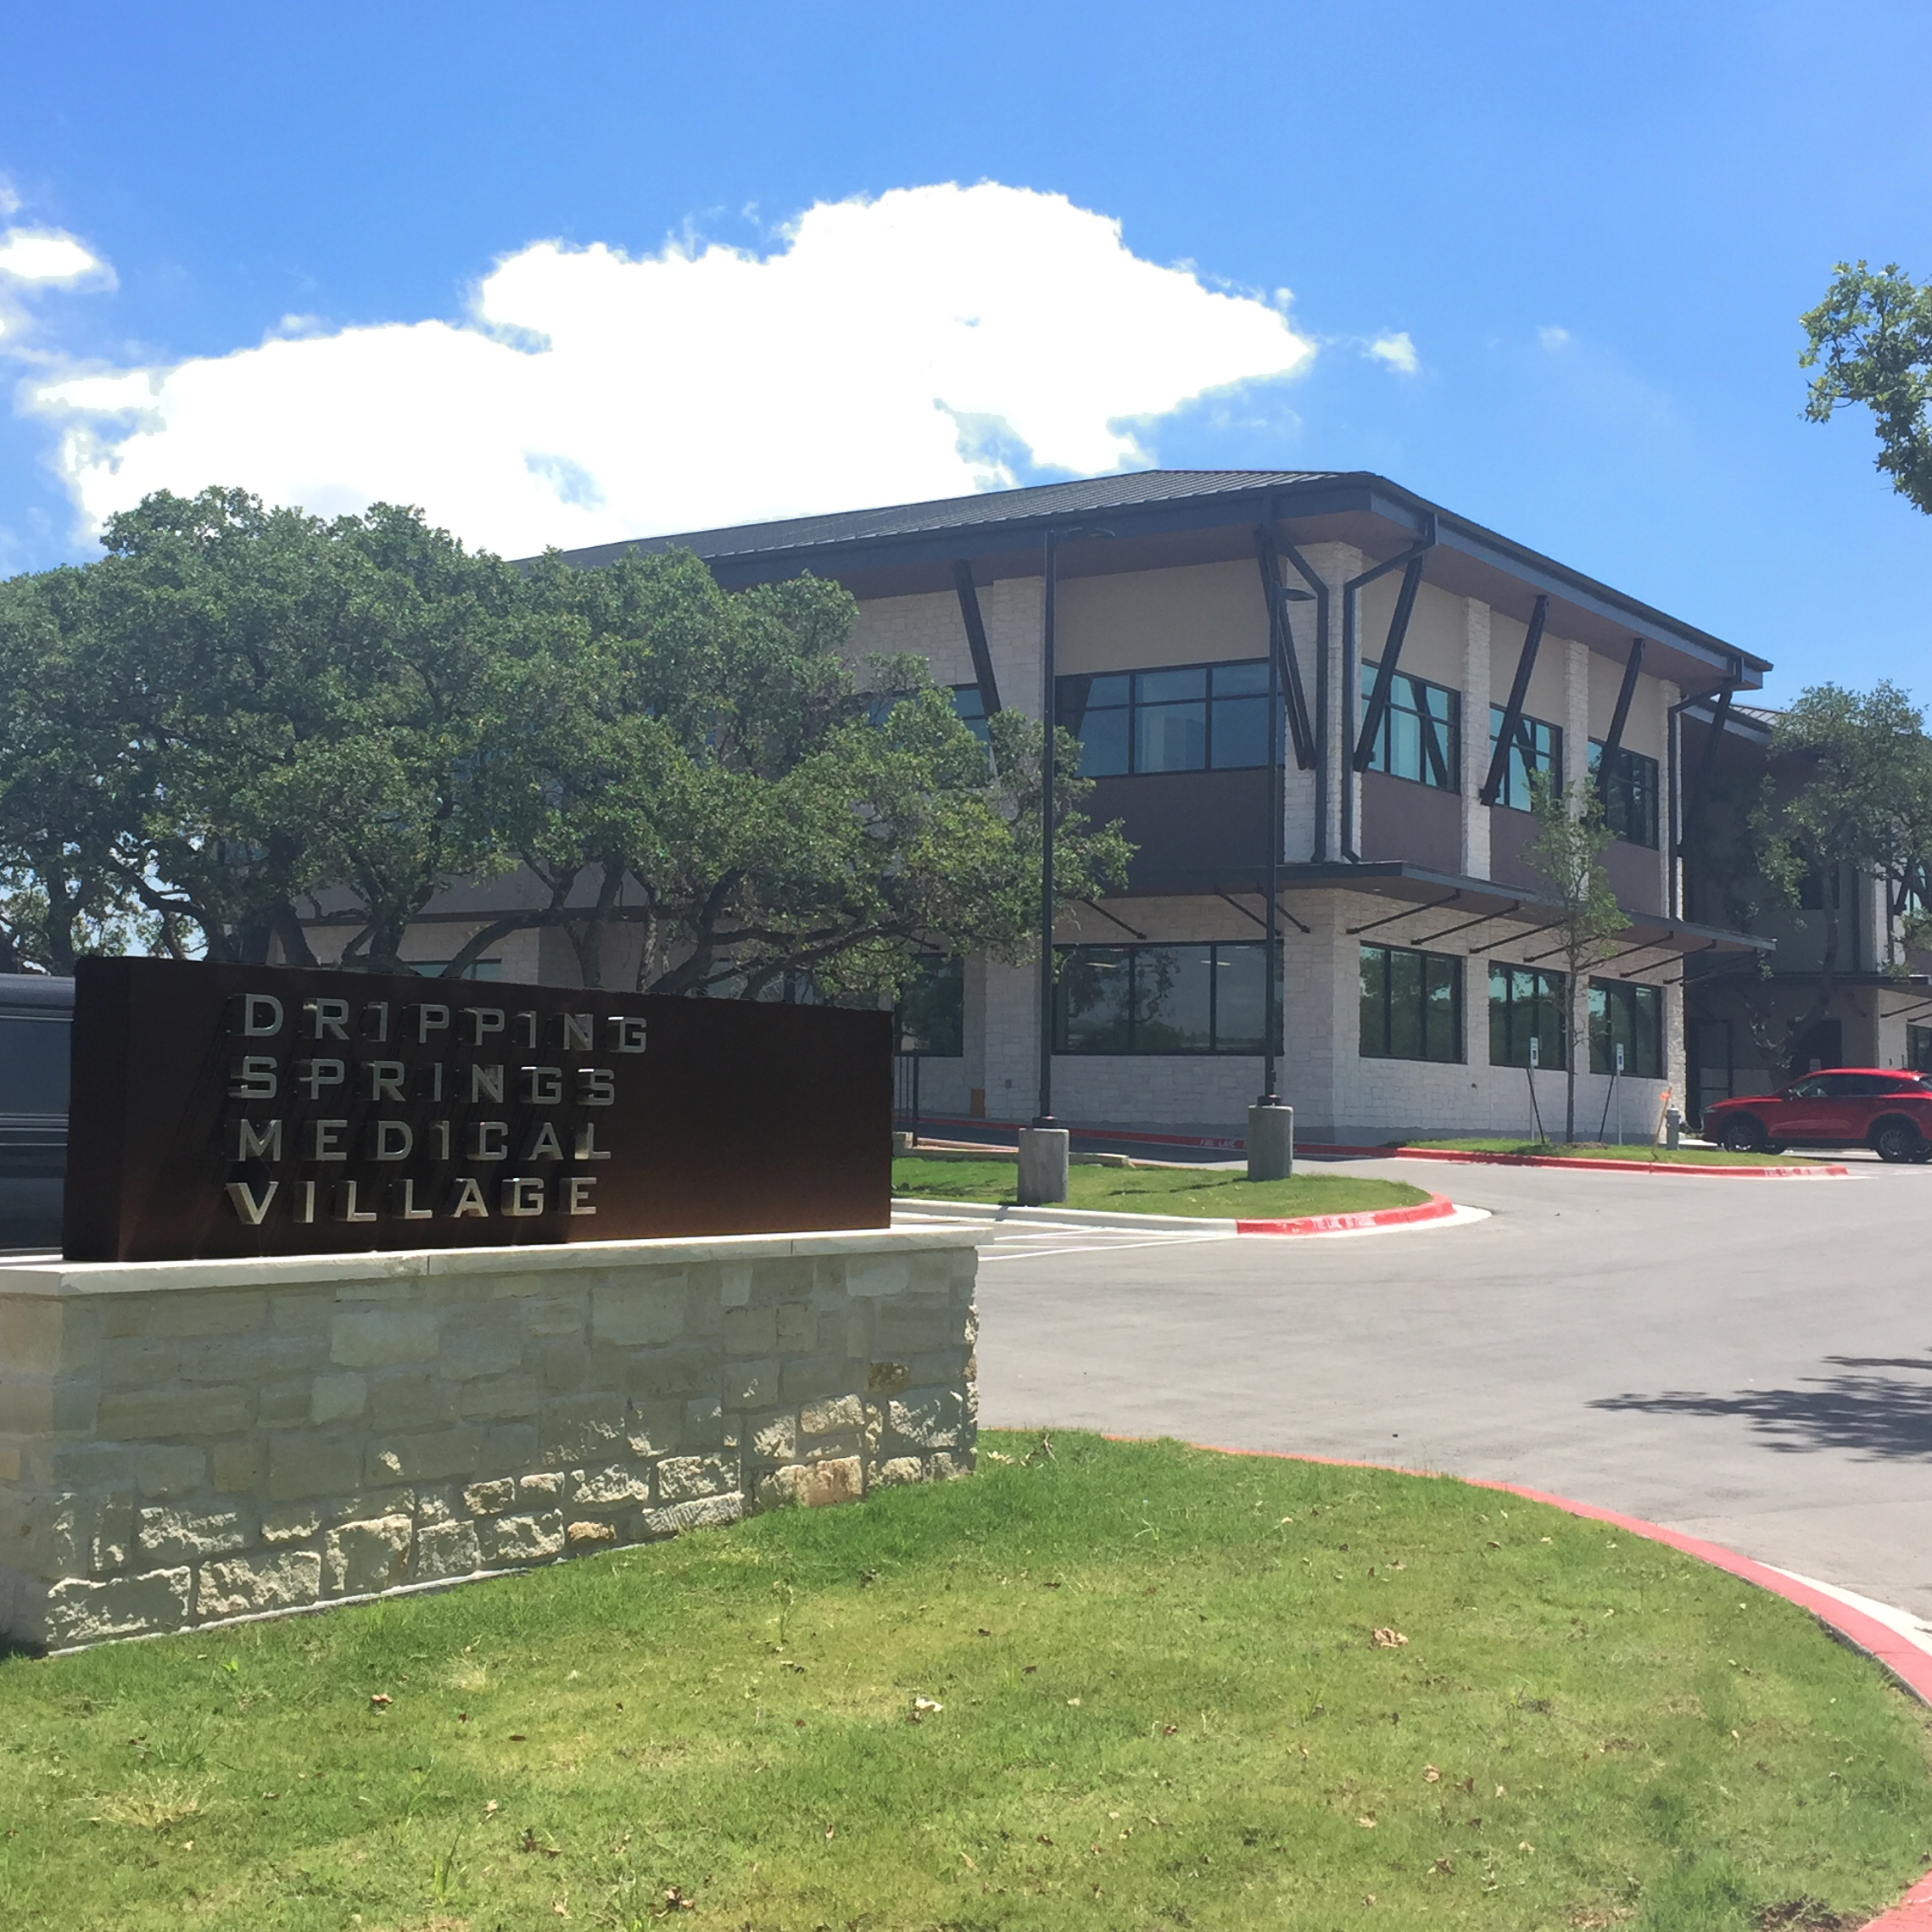 Austin Gastroenterology - Gastroenterologists in Dripping Springs, TX